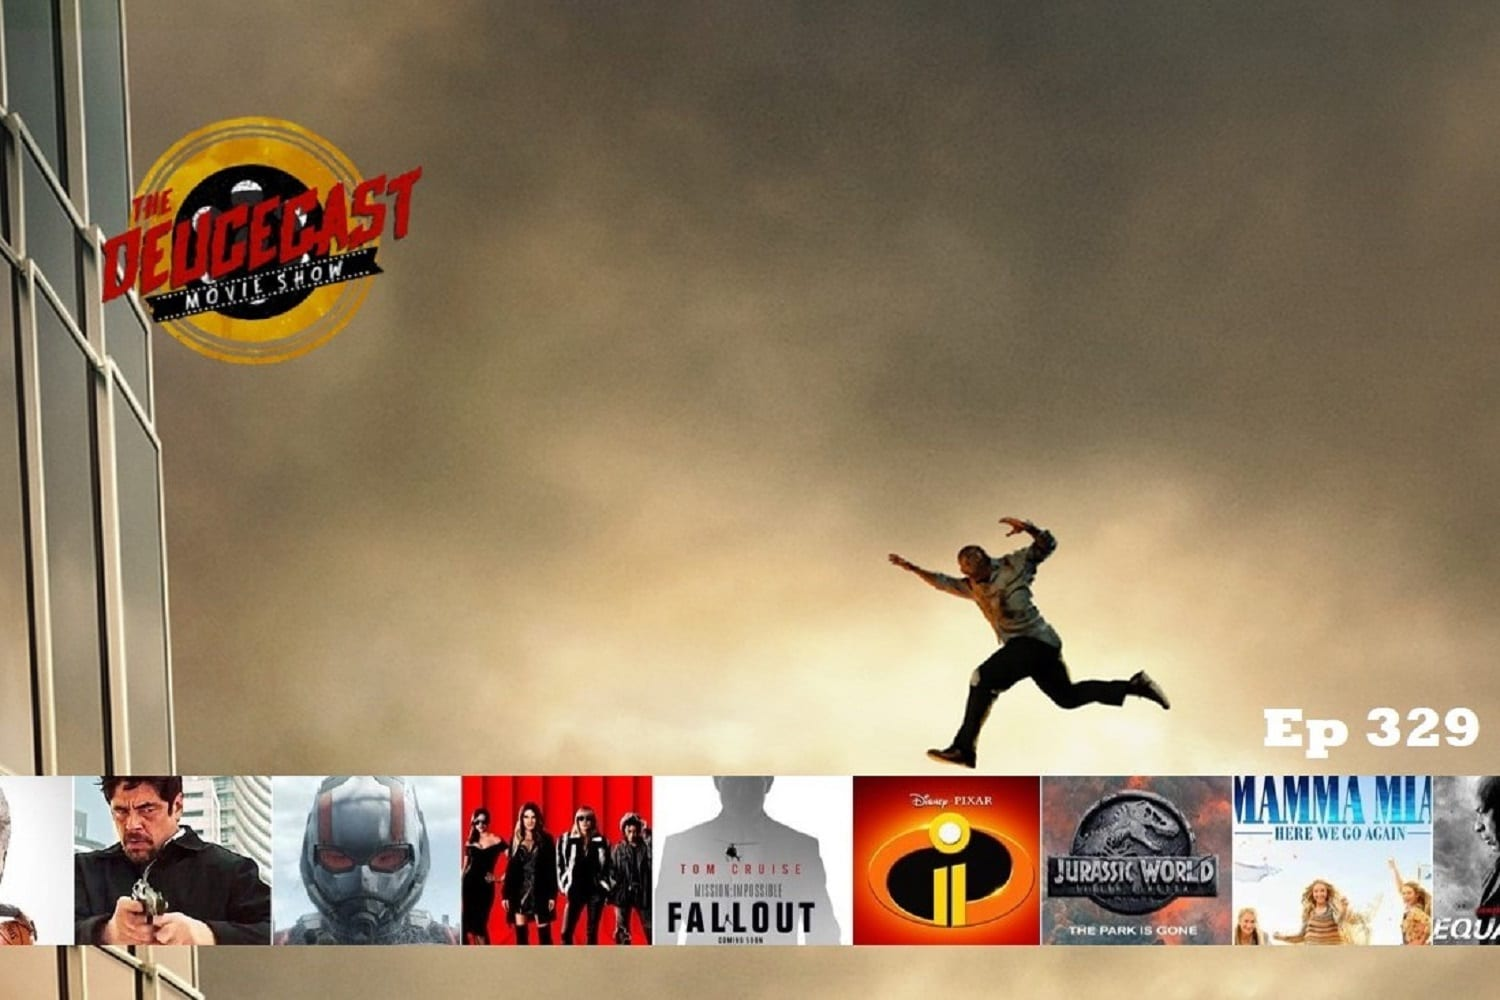 The Deucecast Movie Show #329: The 2018 Summer Movie Preview